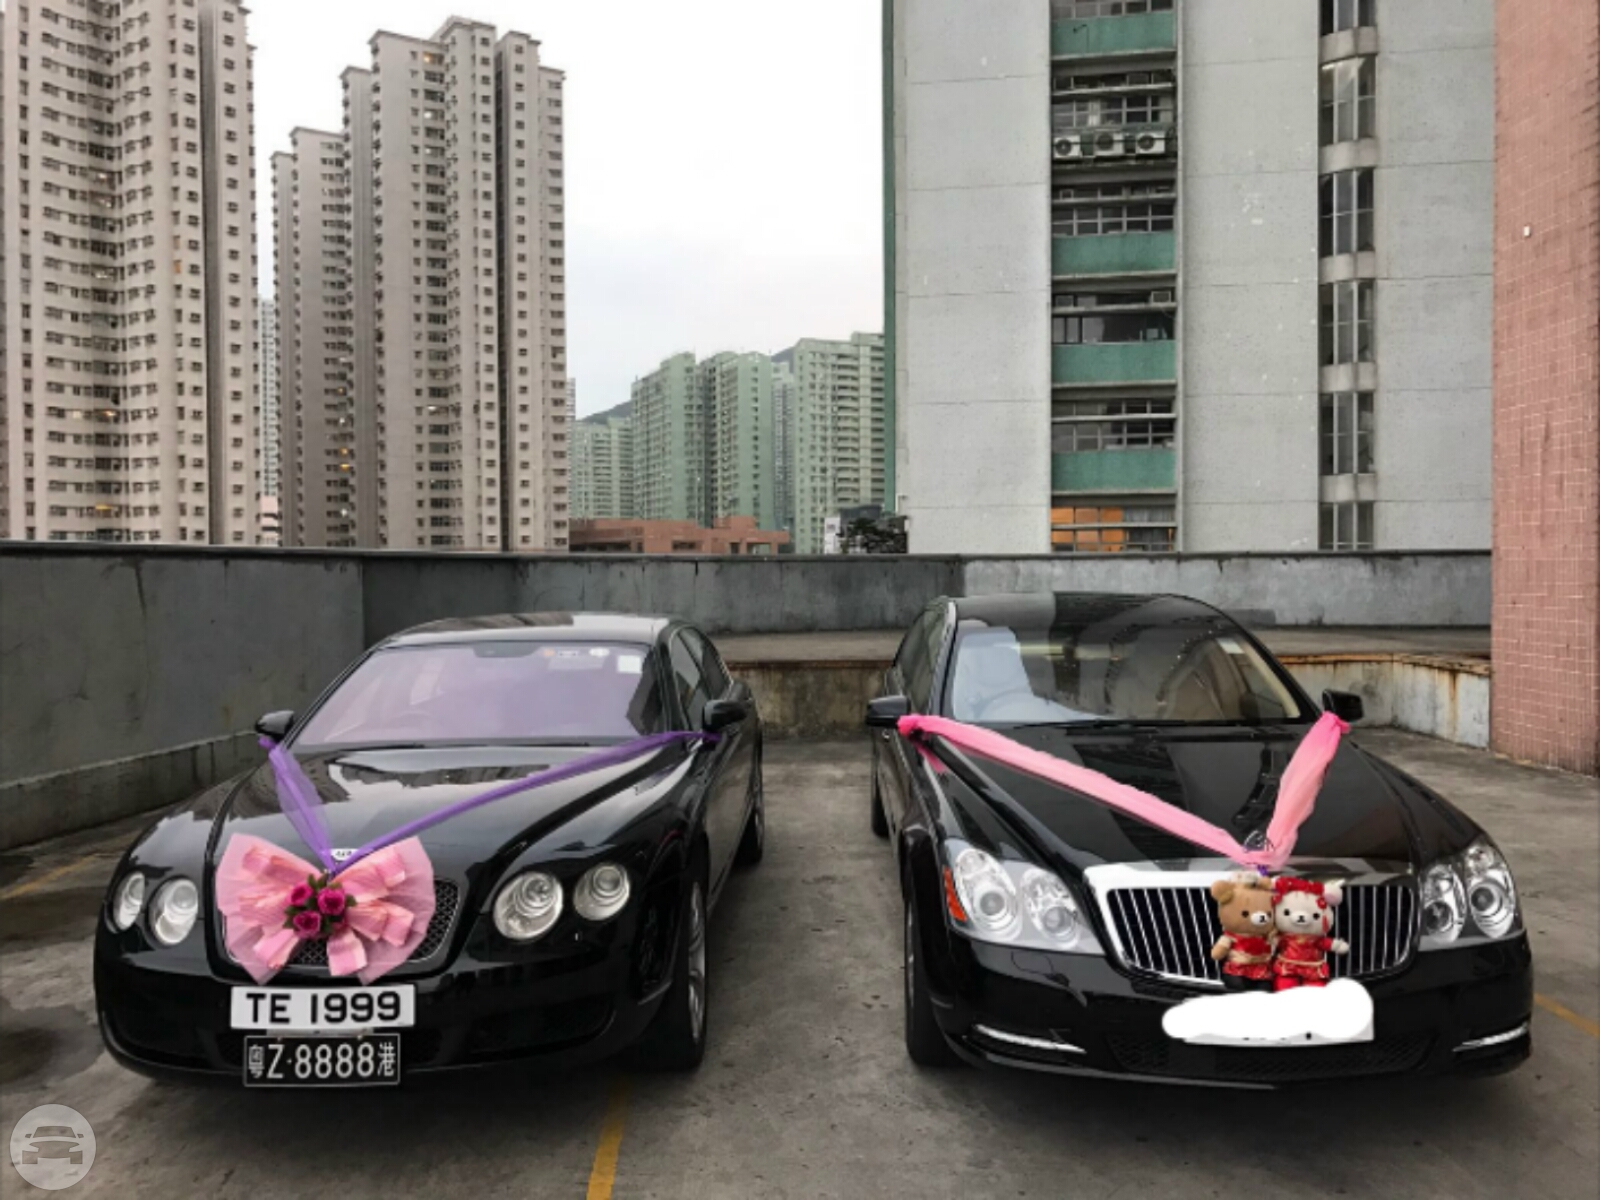 Bentley Sedan / New Territories, Hong Kong   / Hourly HKD 749.00